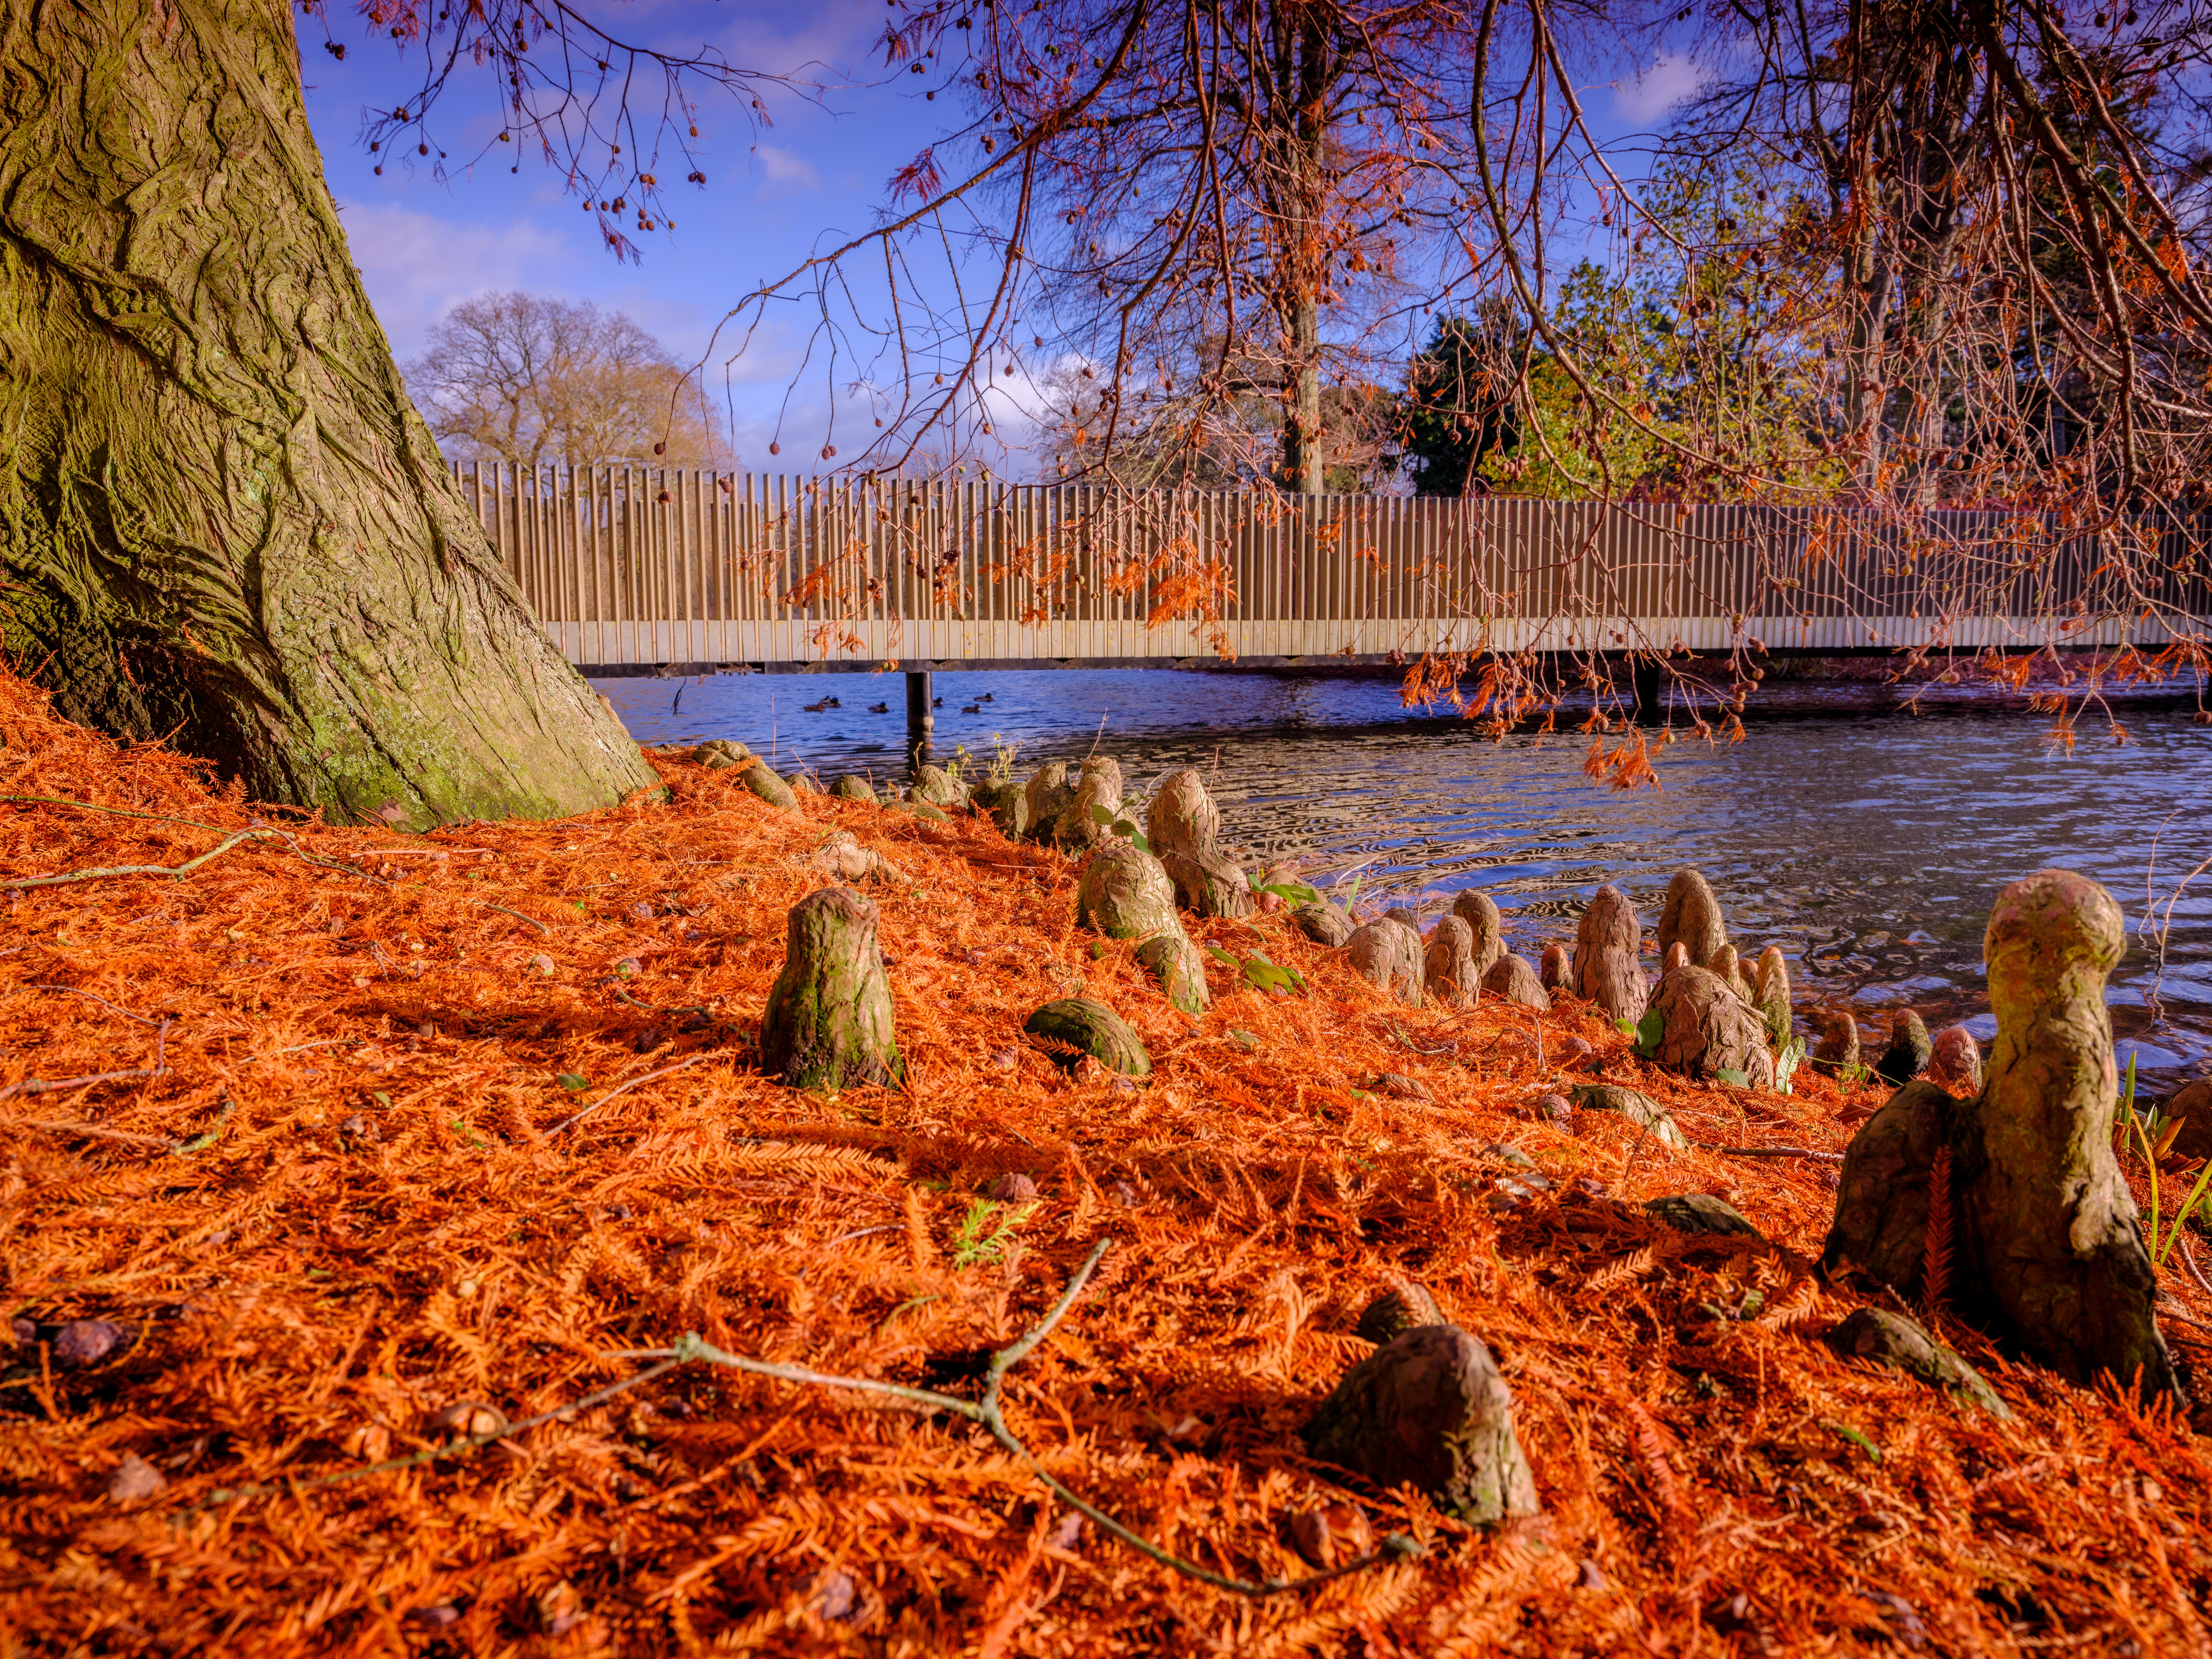 Tree root snorkels by the Sackler Crossing at Kew